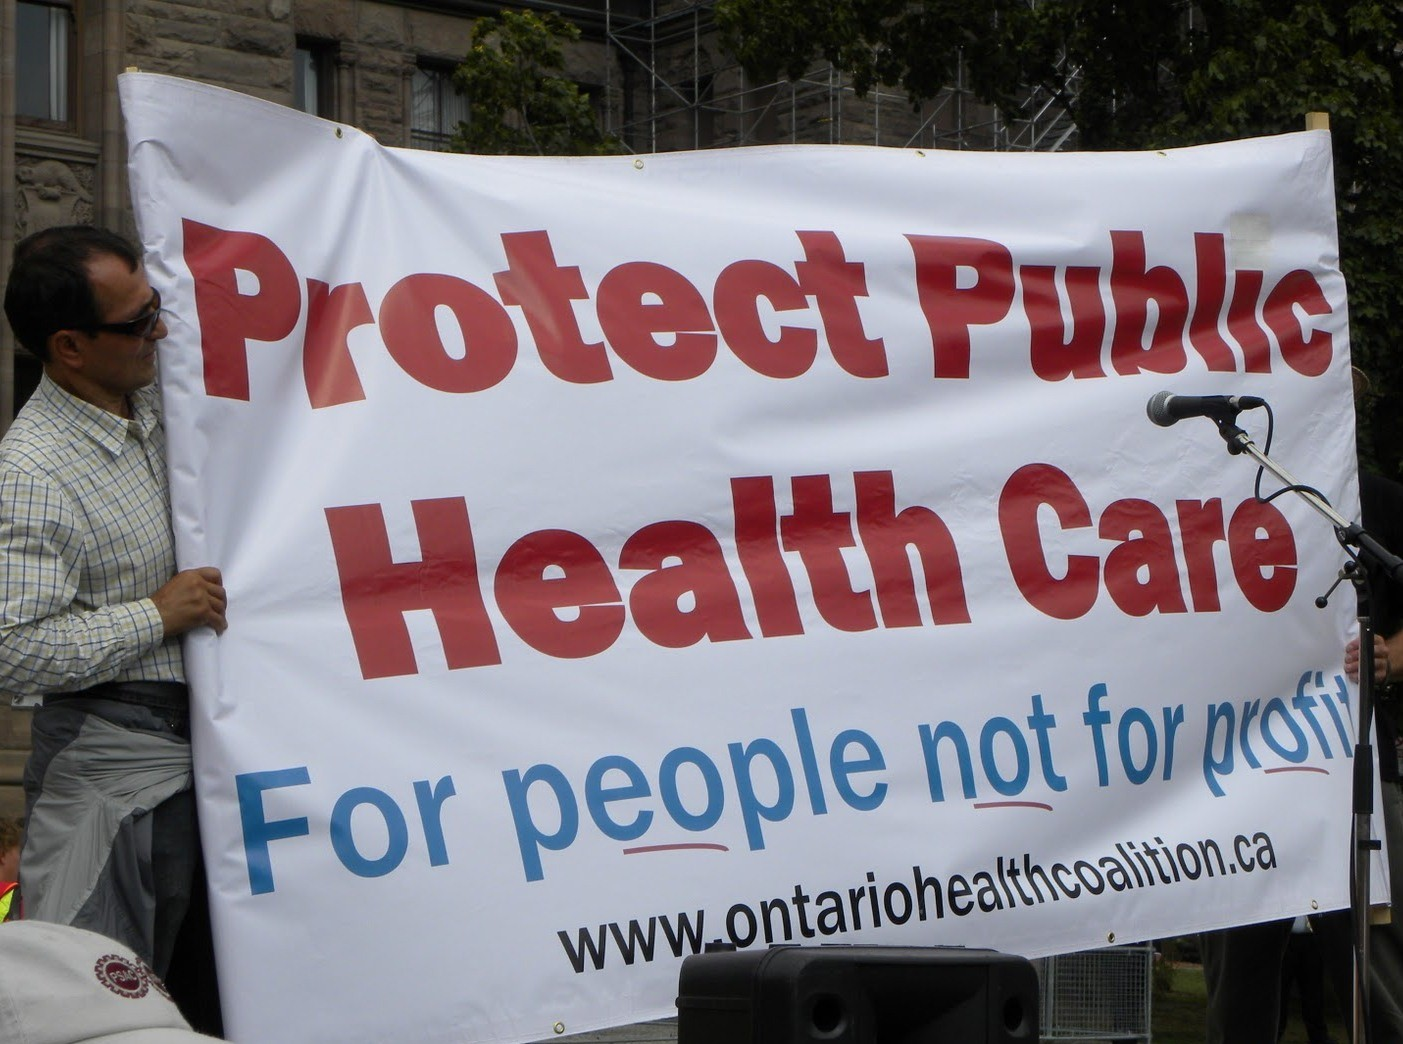 Ontario Health Coalition on protecting patient care. Photo courtesy of No Ad Lib / Blogspot